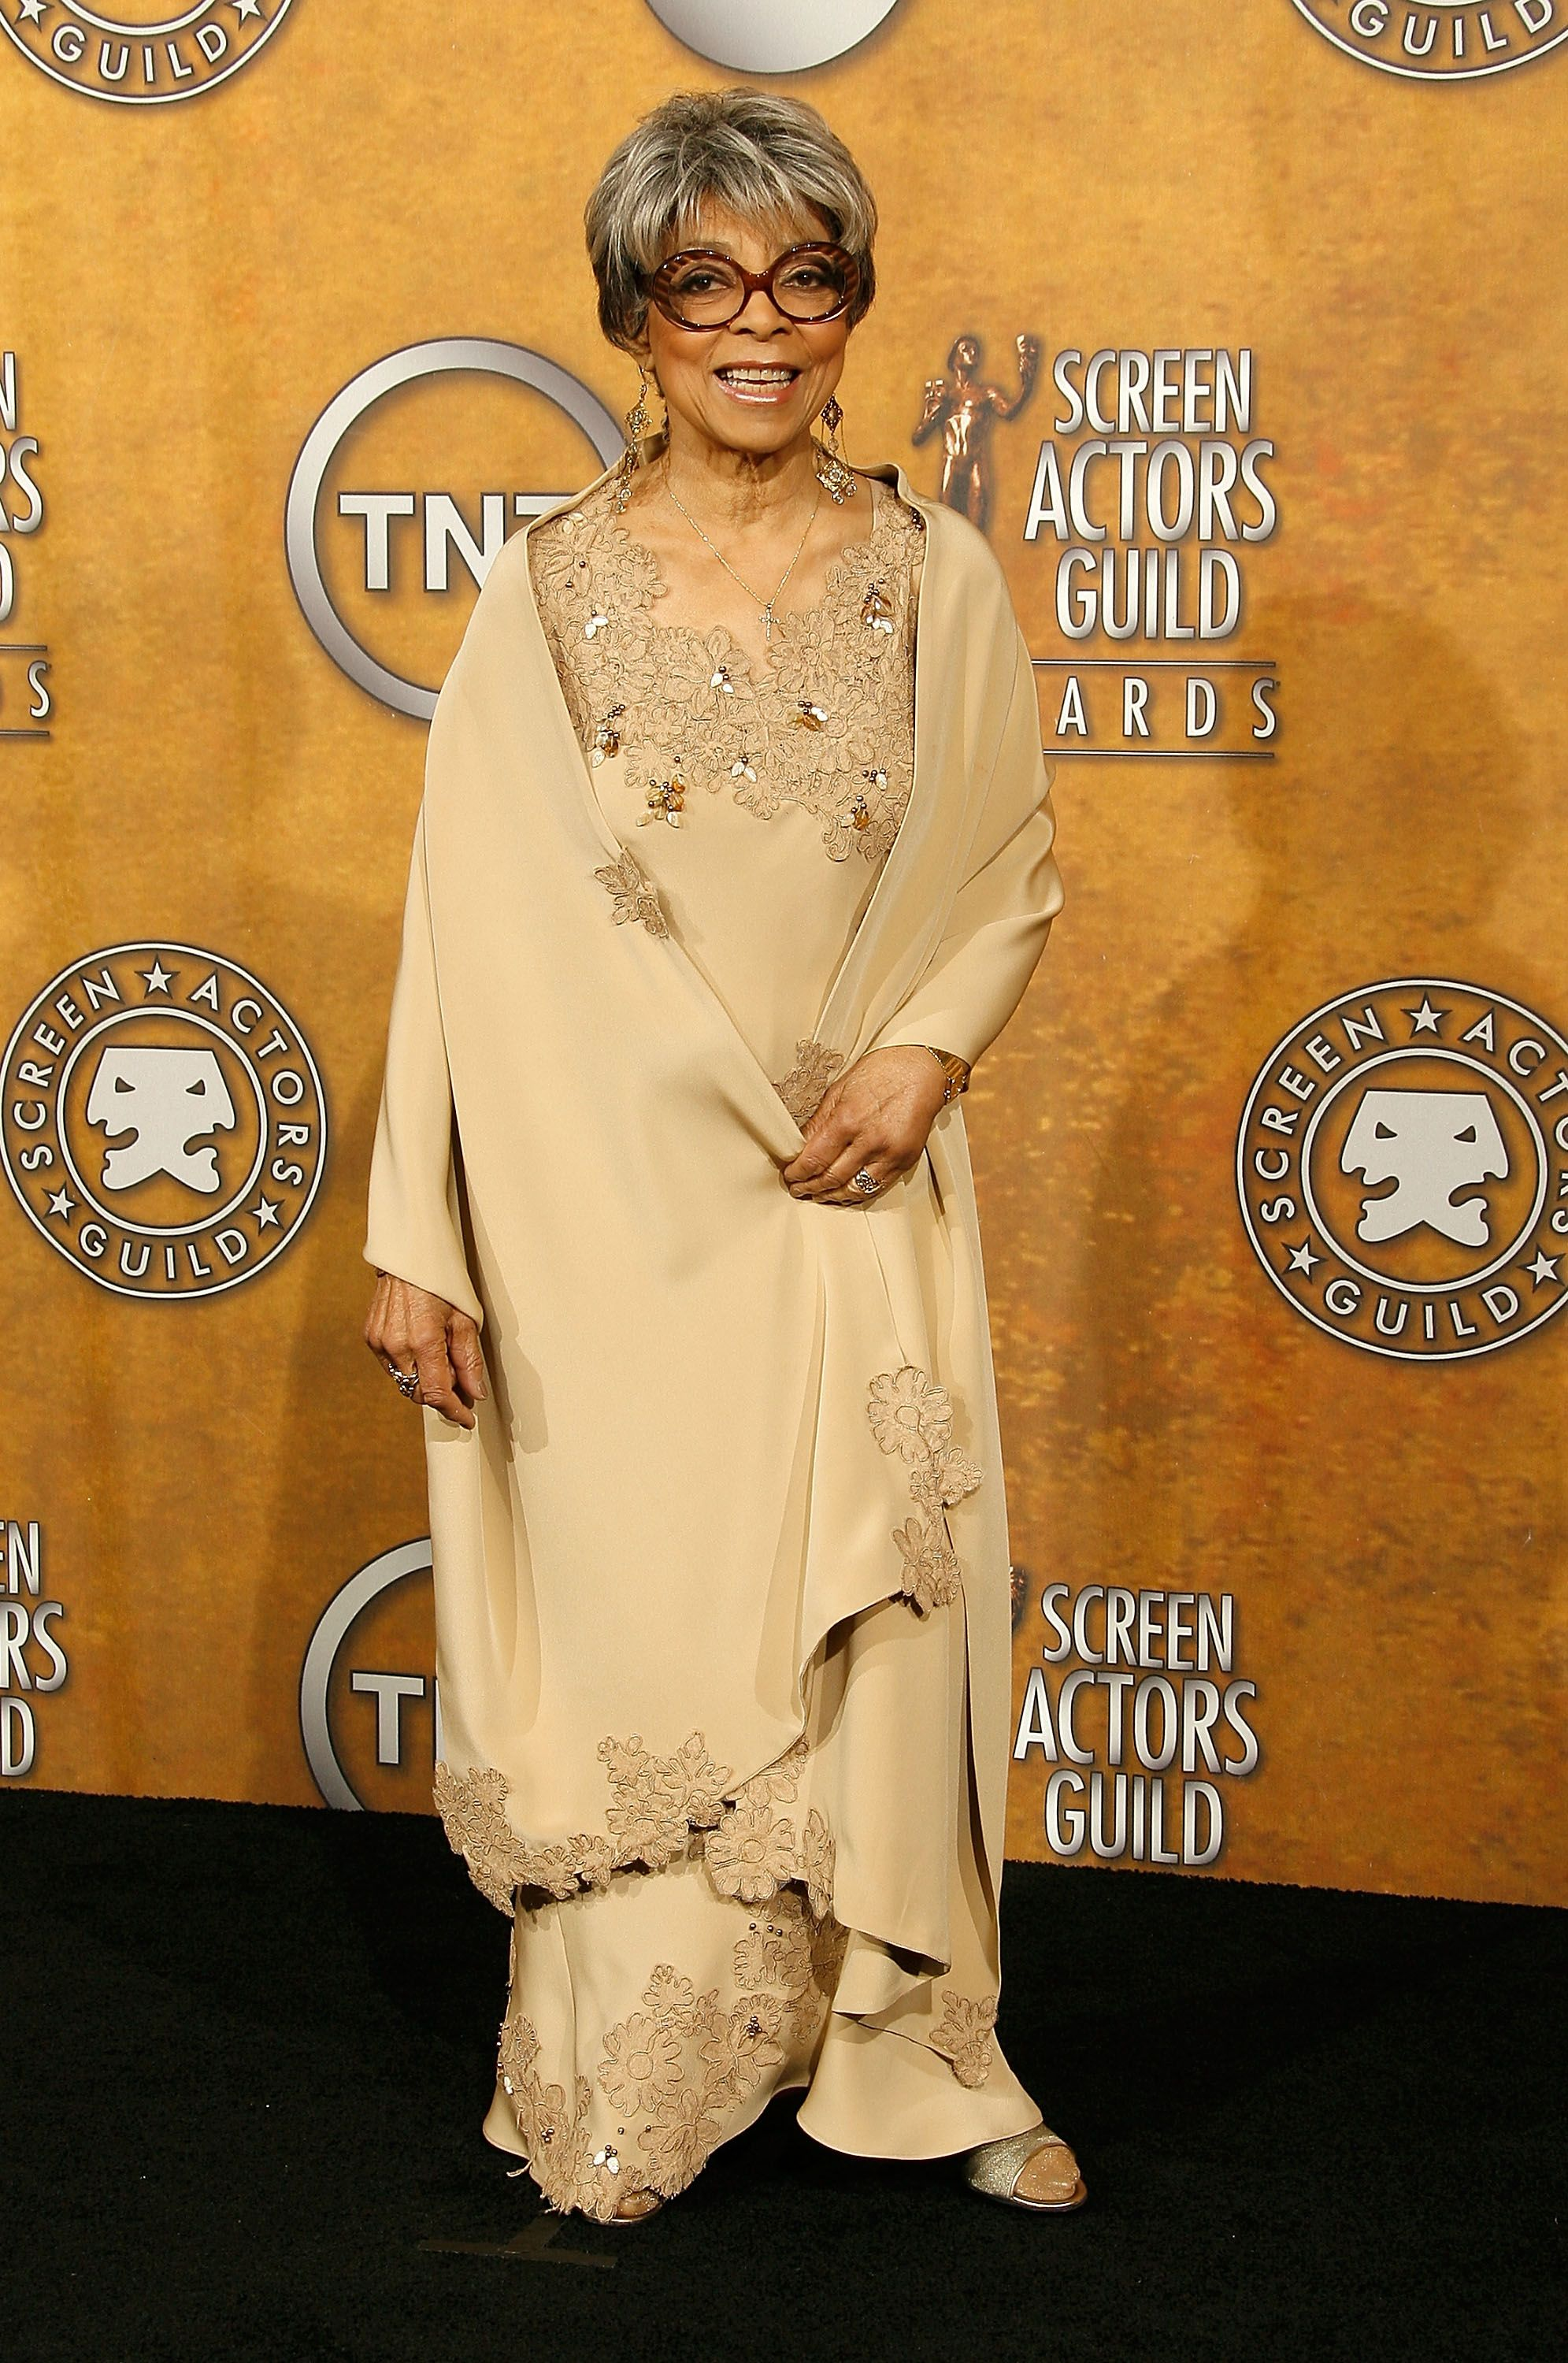 Actress Ruby Dee poses in the press room at the 14th annual Screen Actors Guild awards held at the Shrine Auditorium on January 27, 2008 | Photo: Getty Images